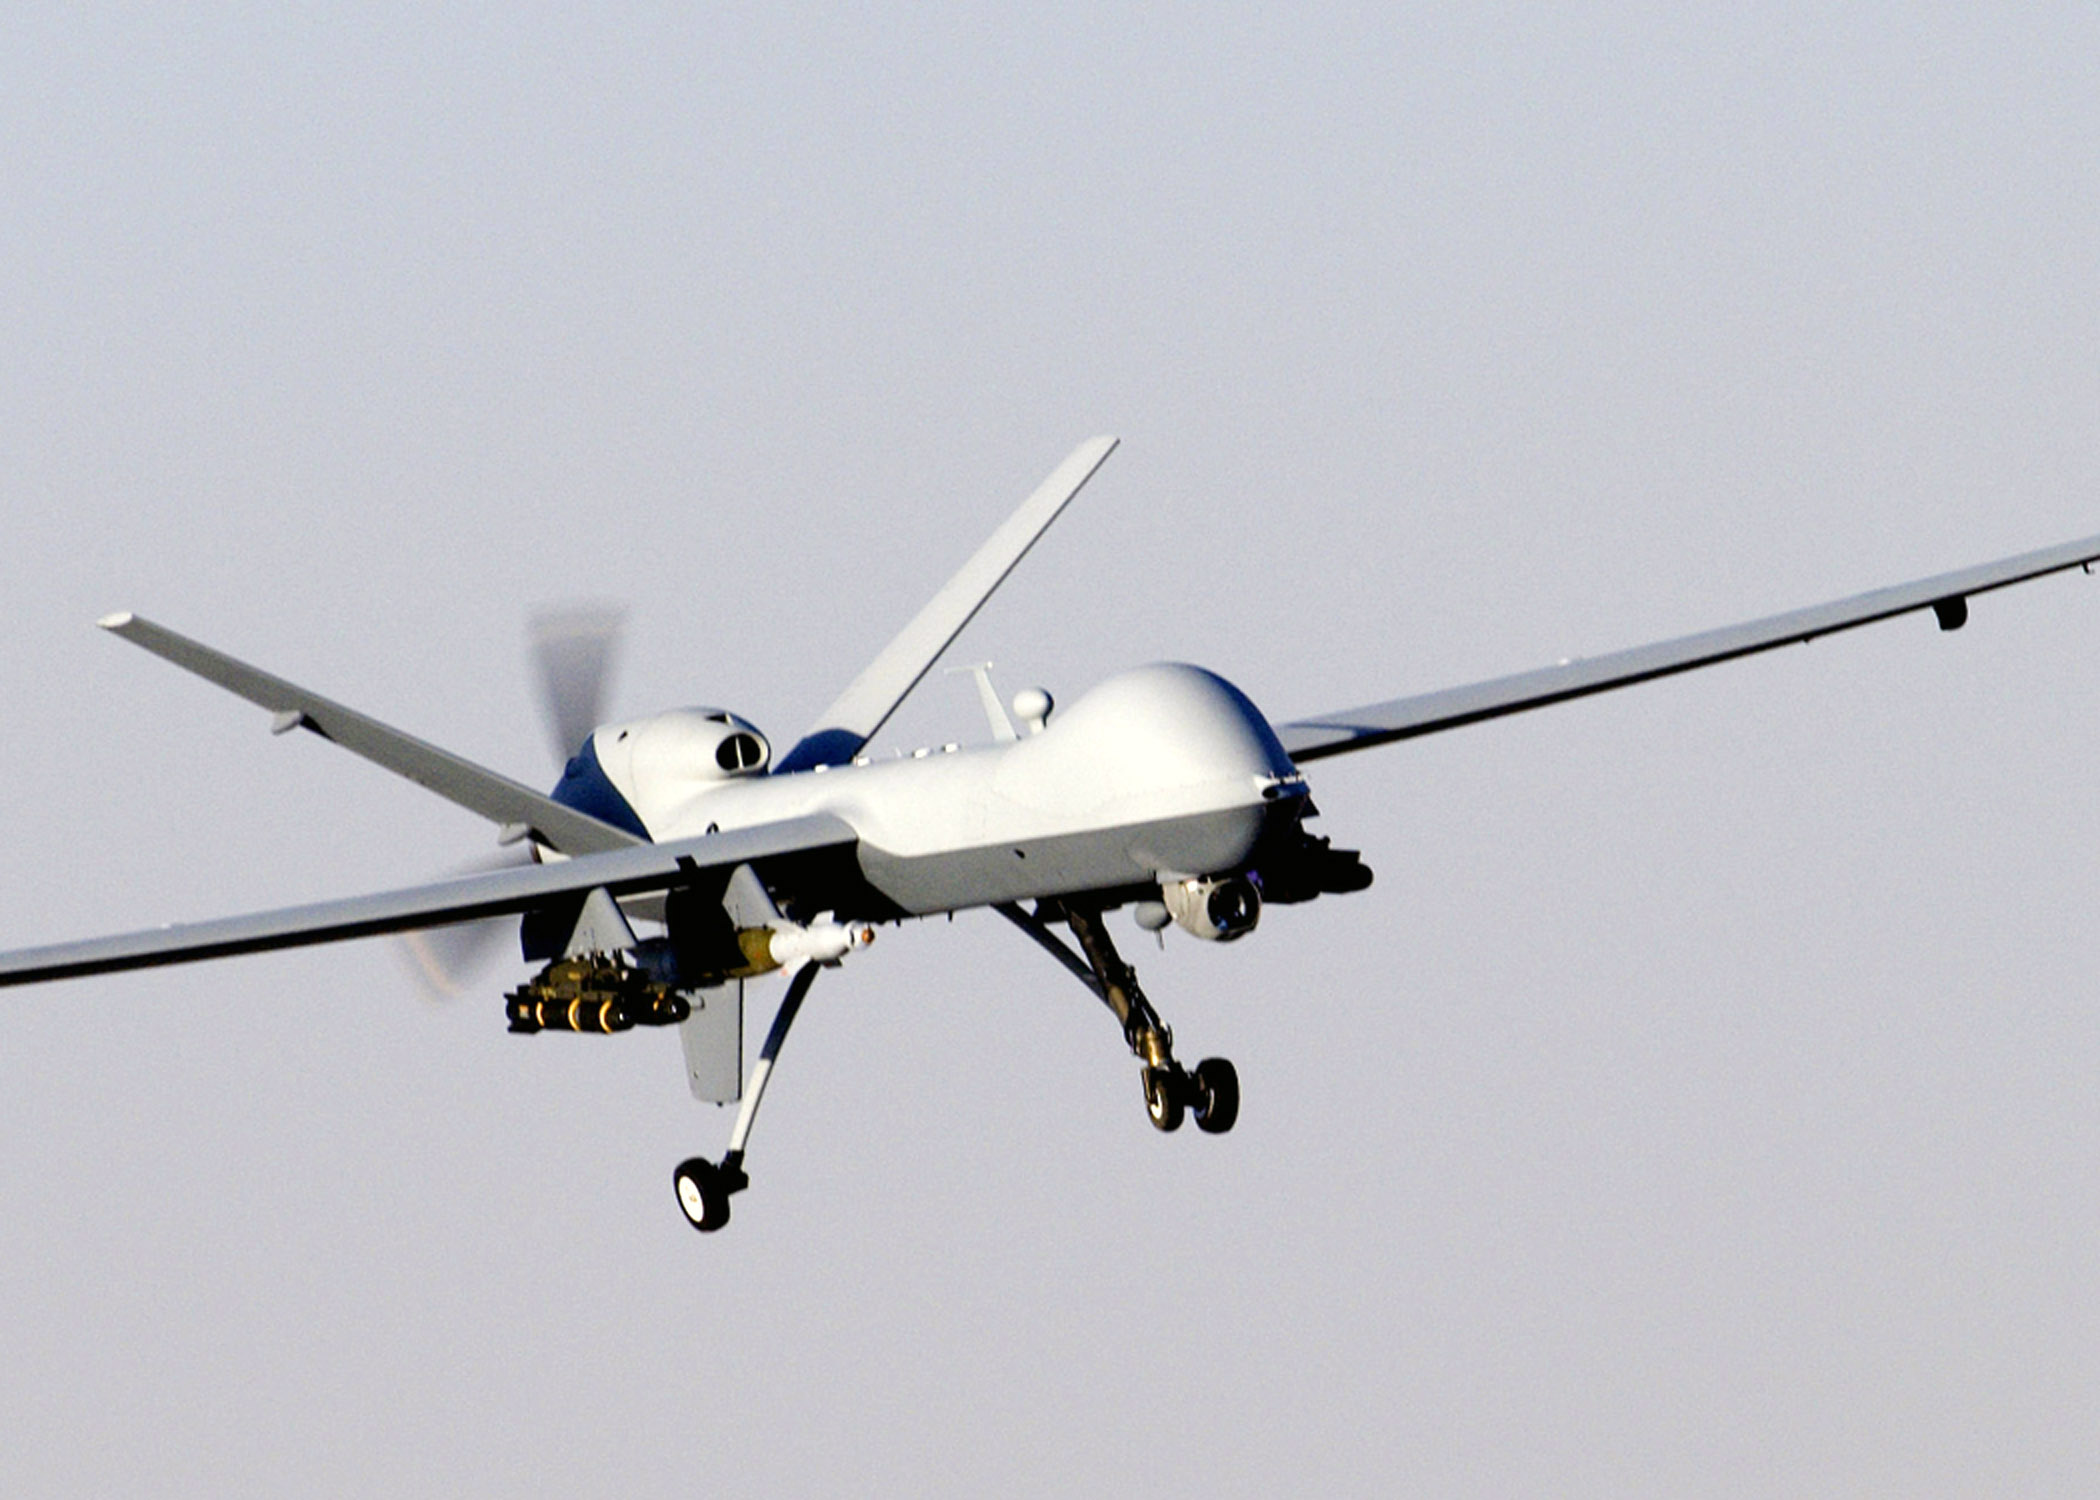 The MQ-9 Reaper is pretty badass, though it's primary purpose is to kill human beings, I'm not really a huge fan of that but hey, it's some cool tech anyway.